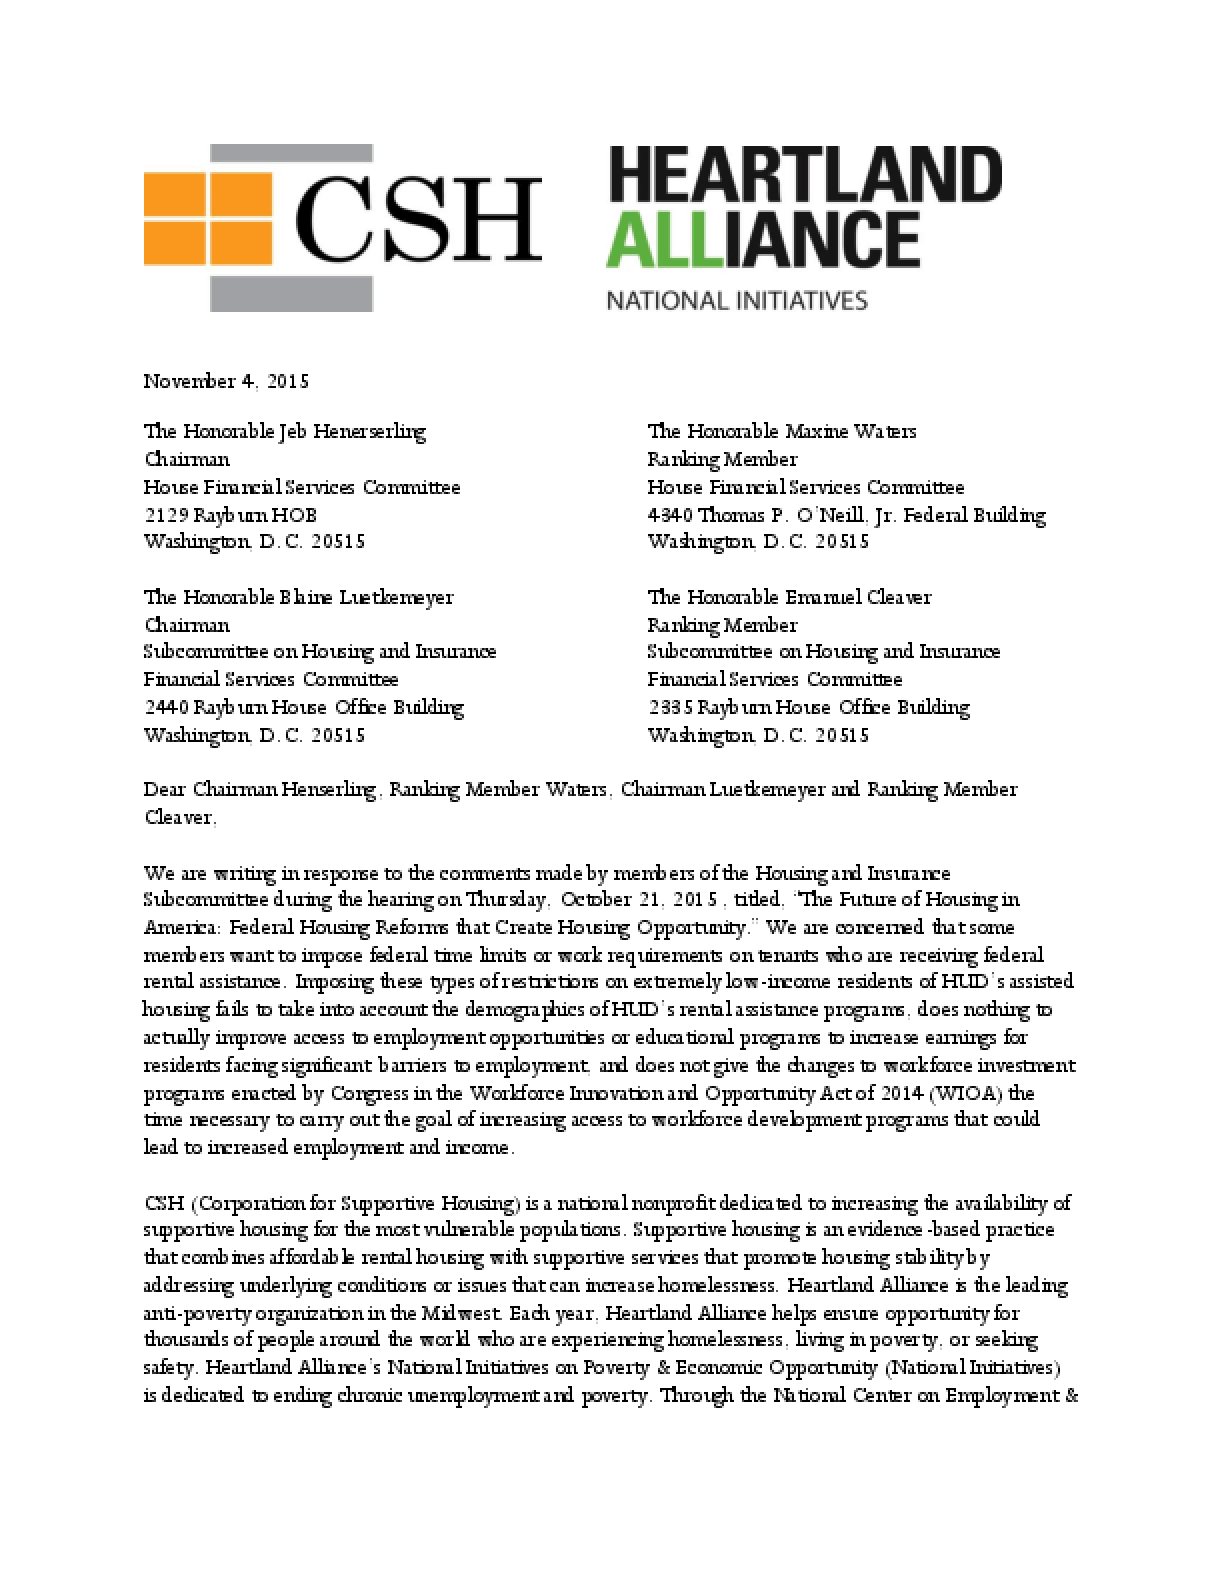 Letter to HFSC: Raising Awareness of Improving Access to Workforce Programs for Extremely Low Income Households